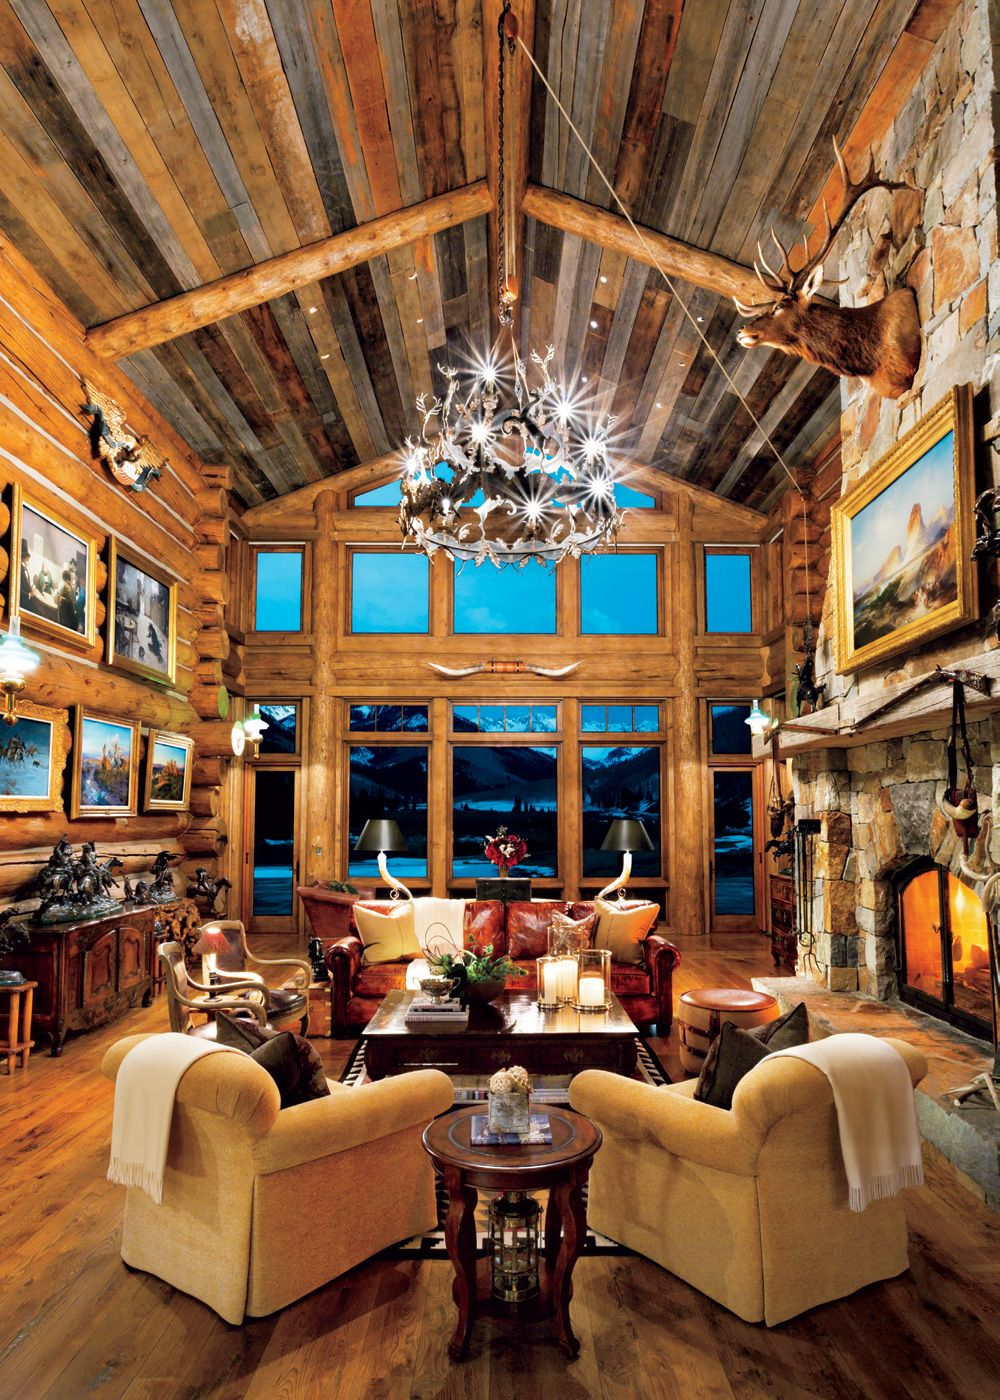 Legacy Springs Ranch, Texas: $81million #21 Most Expensive